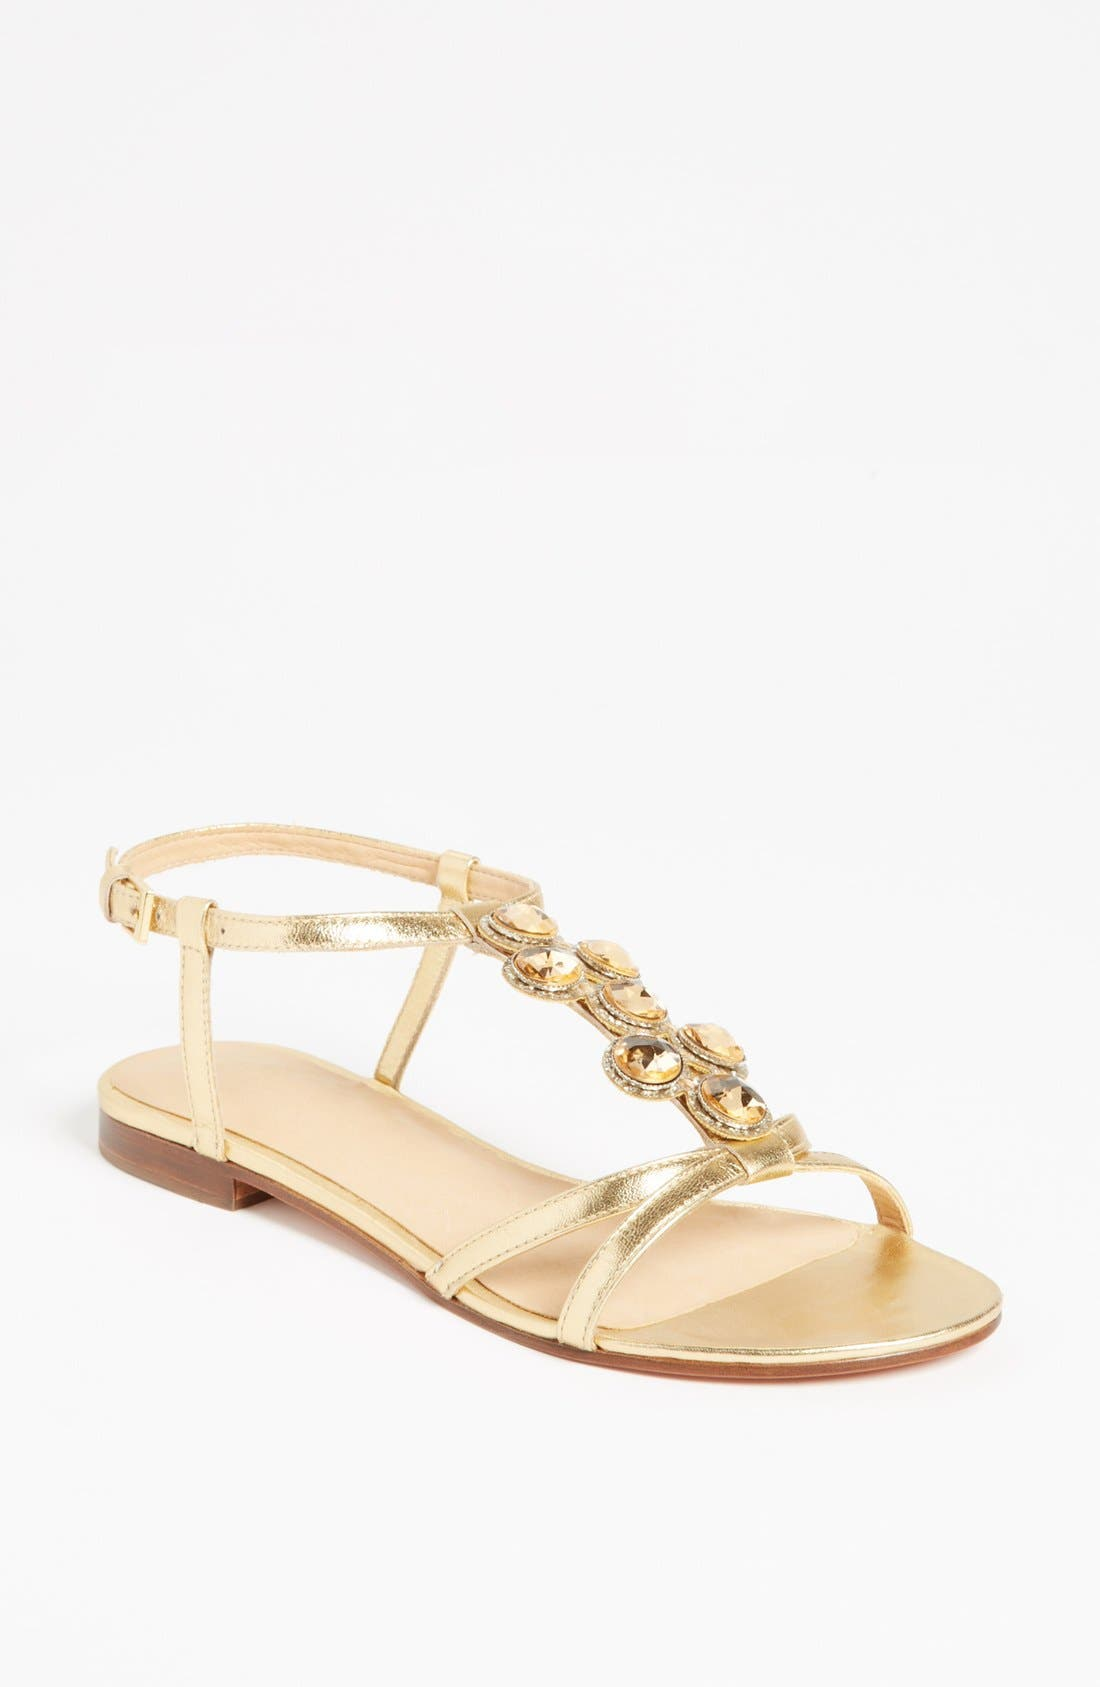 Alternate Image 1 Selected - kate spade new york 'stacey' sandal